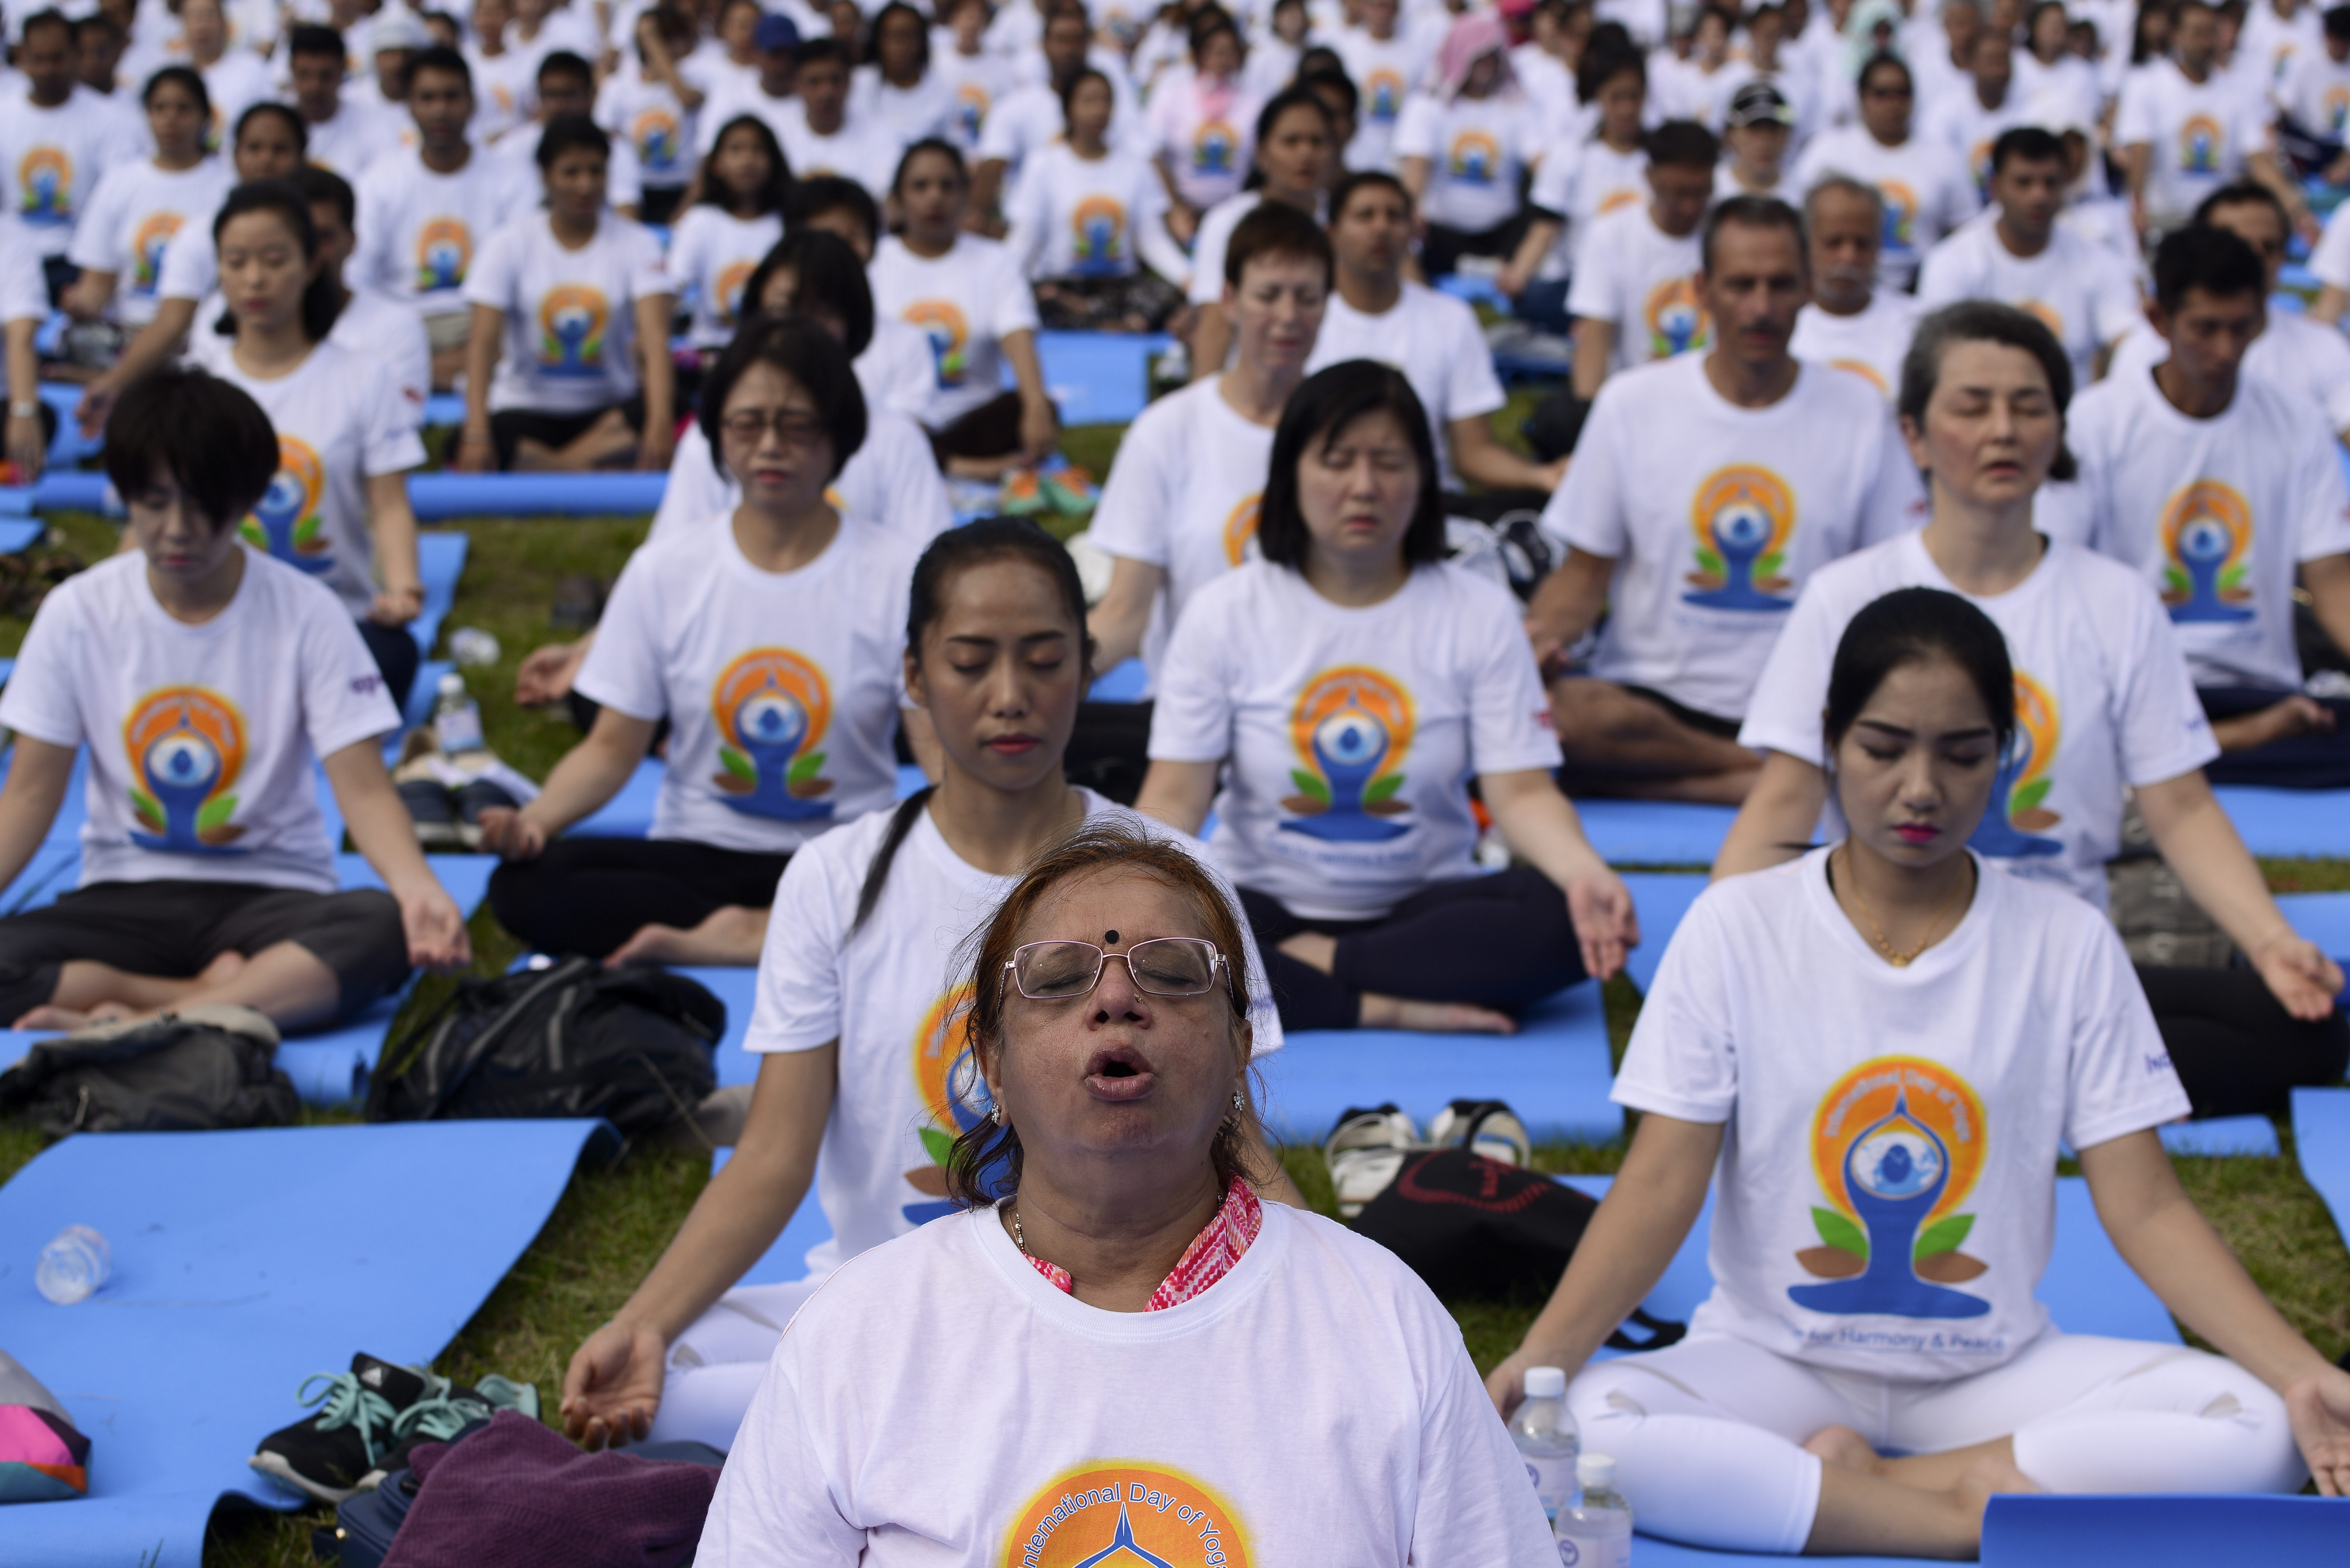 In the run up to the International Day of Yoga on June 21, thousands of people participate in a yoga exercise at Chulalongkorn University field in Bangkok, Thailand on June 17, 2018.